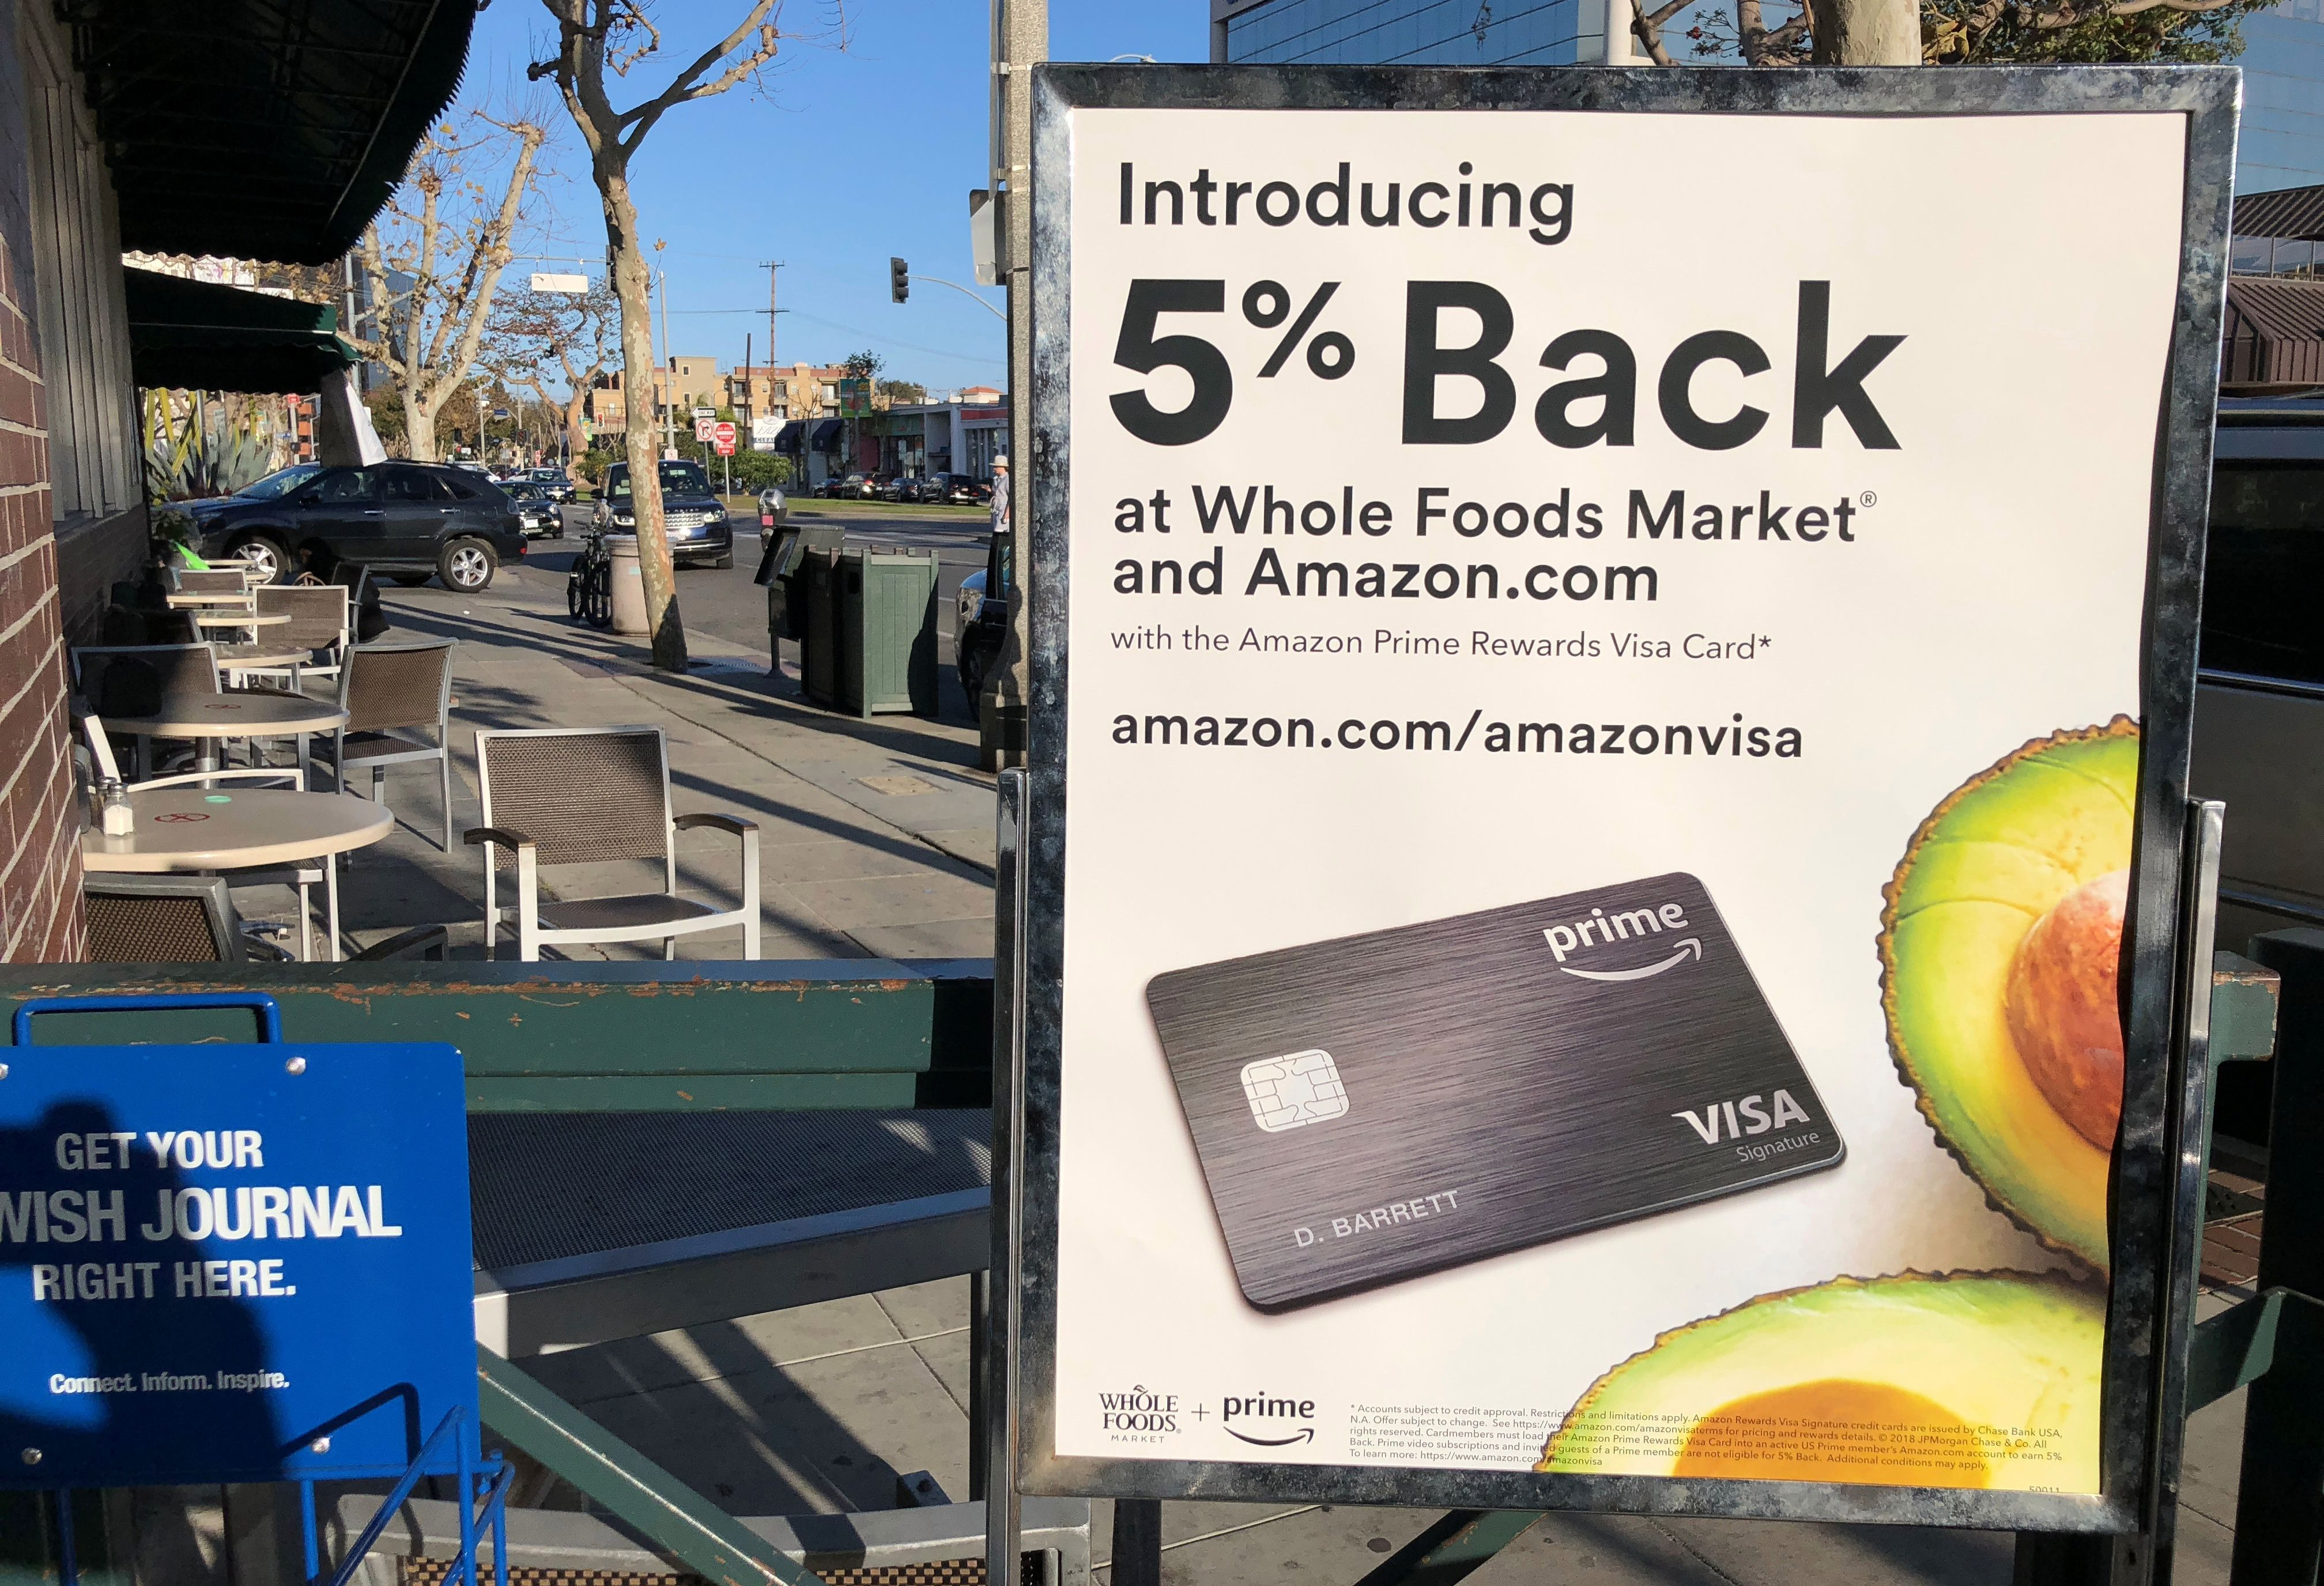 A sign advertising a credit card offering a discount at Whole Foods and Amazon is seen outside a Whole Foods store in Los Angeles, California, U.S., February 26, 2018. Picture taken February 26, 2018. REUTERS/Lucy Nicholson - RC1E9B62E220